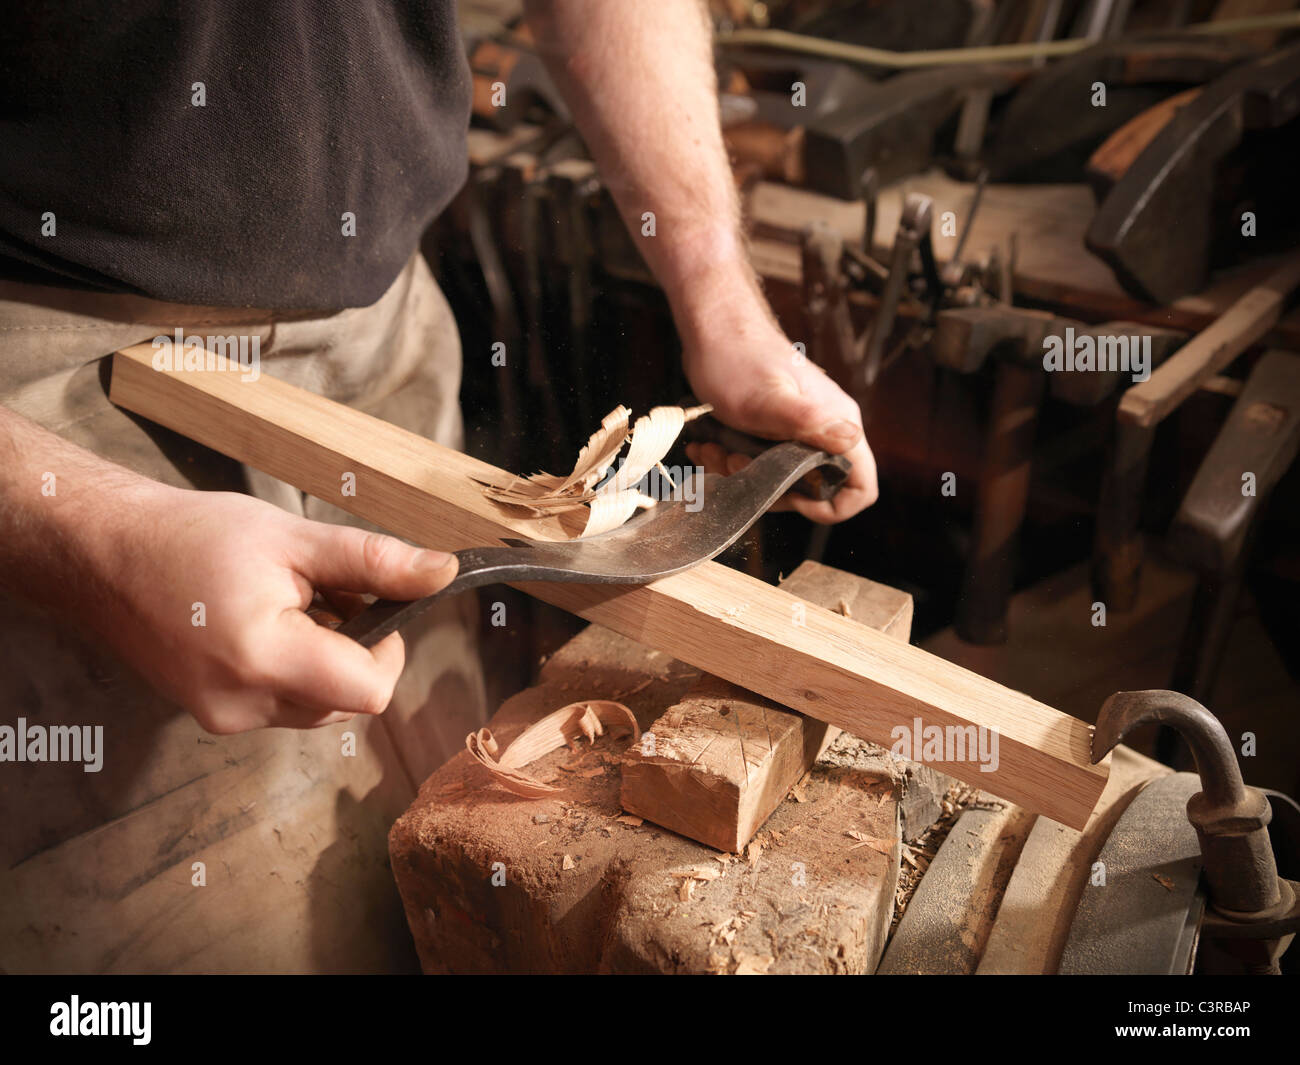 Cooper making a barrel with tools - Stock Image